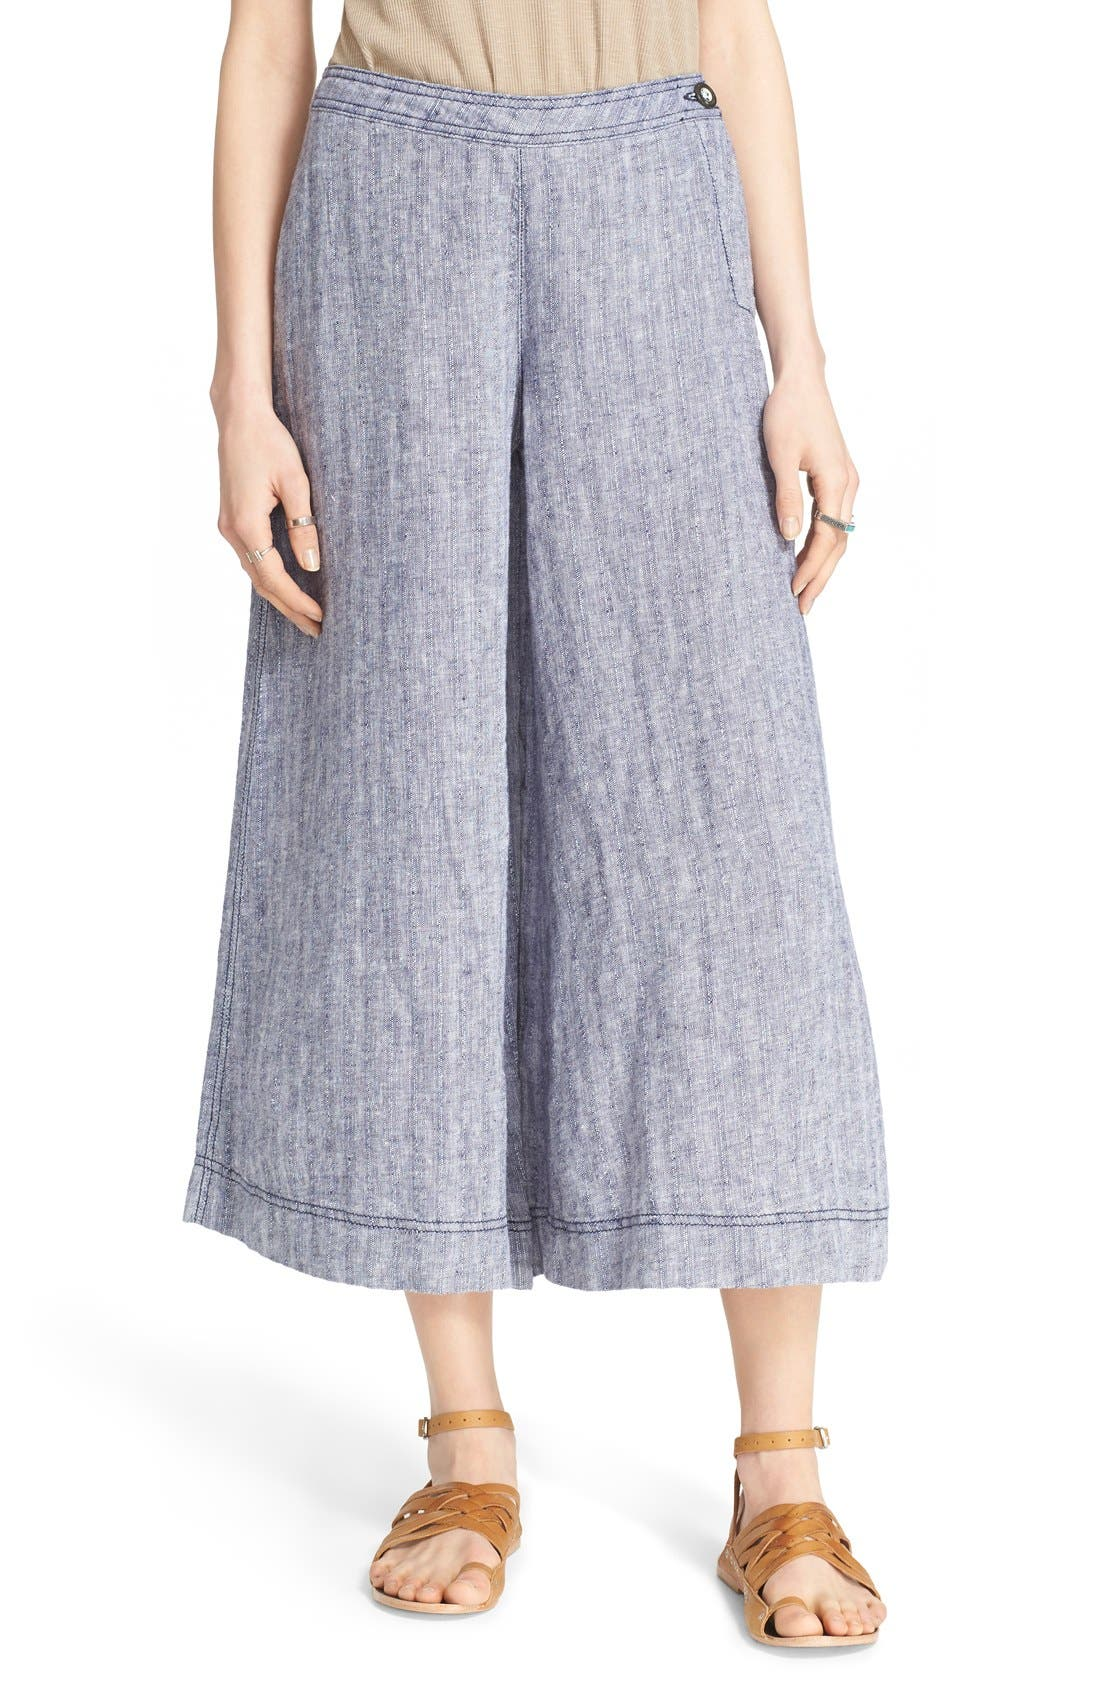 Alternate Image 1 Selected - Free People 'Sani' Linen Culottes